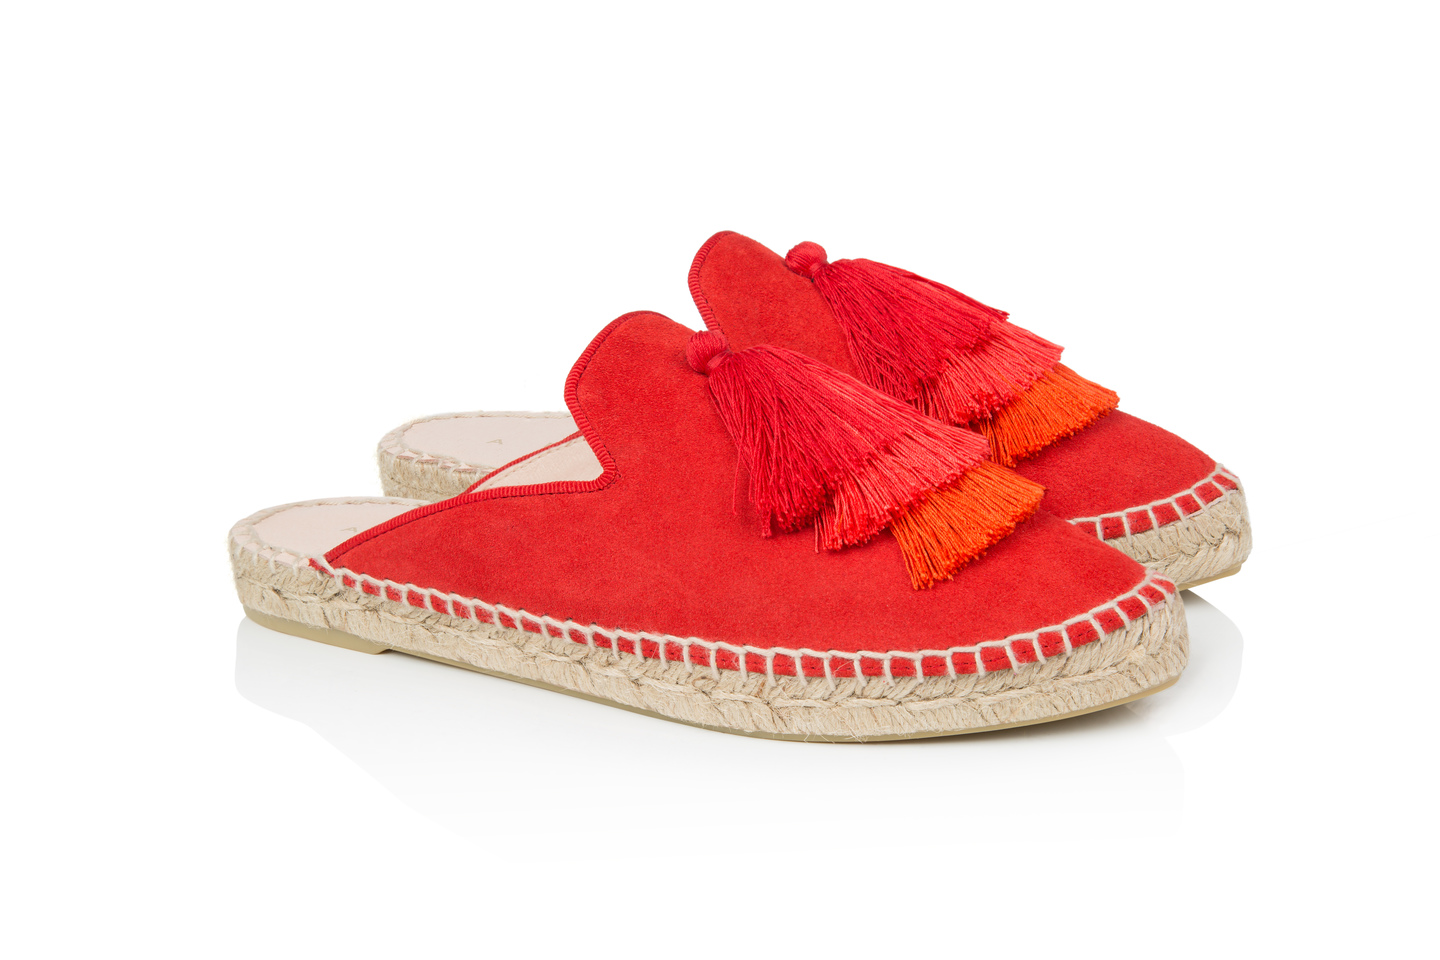 Souk Red suede espadrilles | Air & Grace